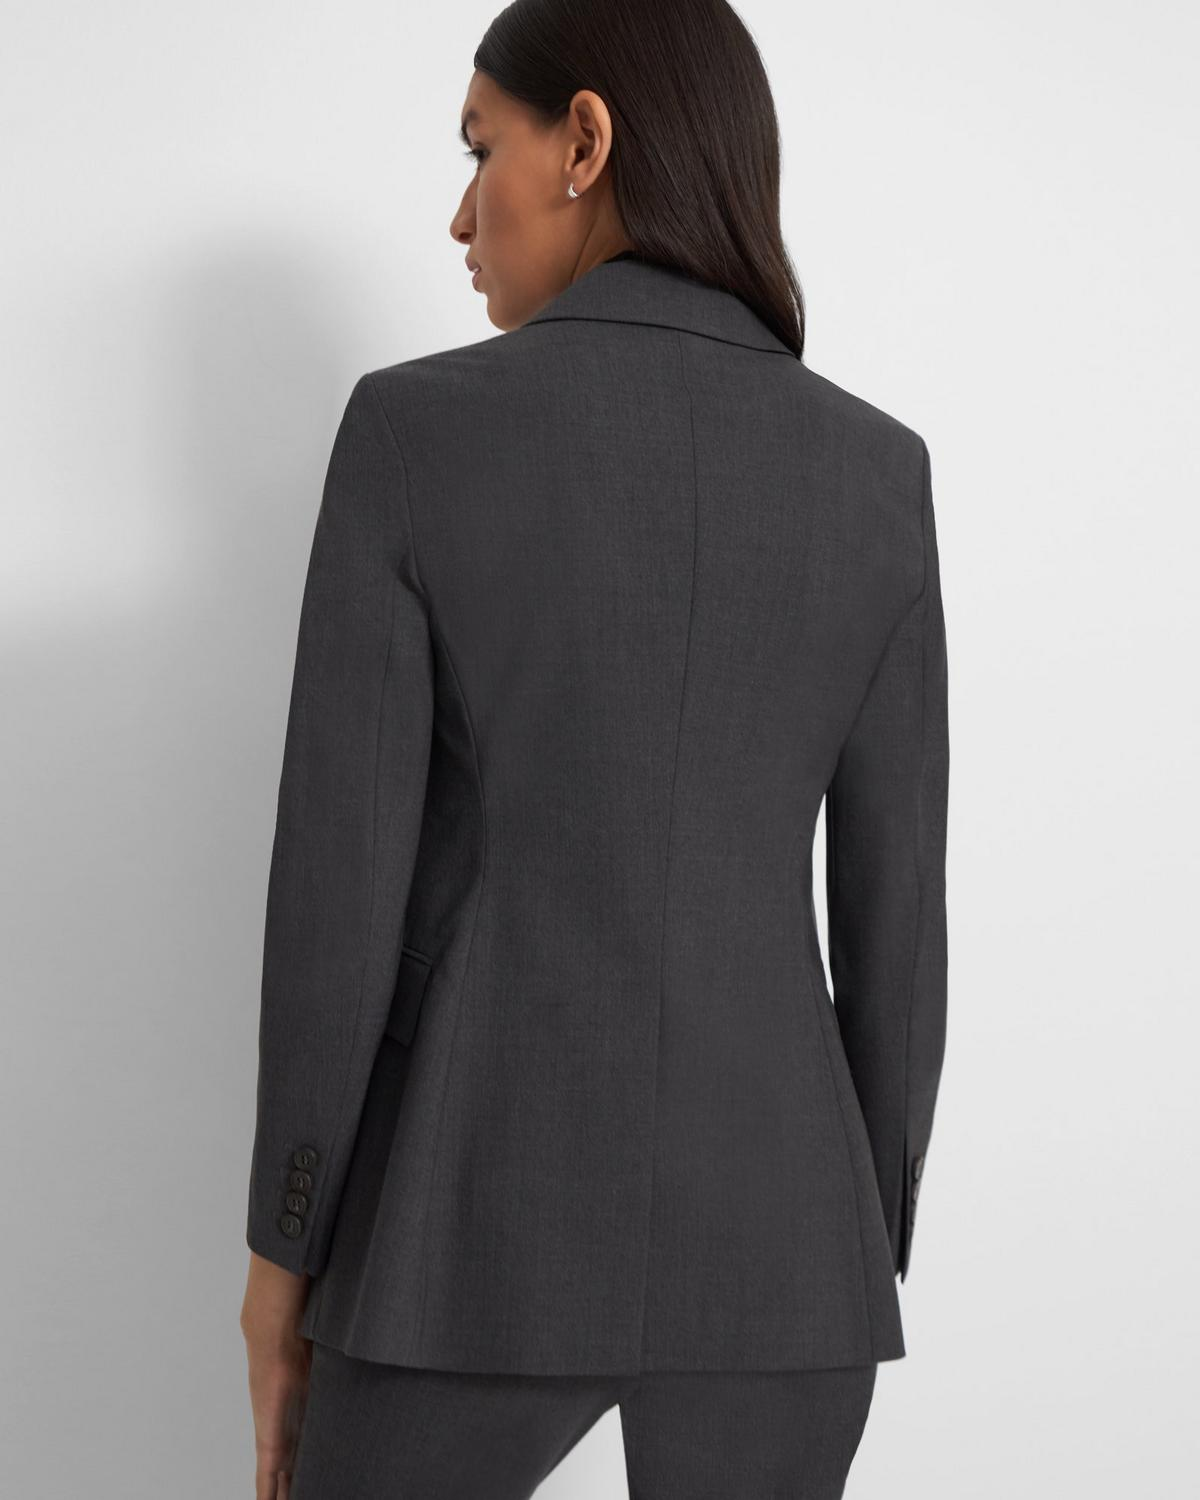 Etiennette Blazer in Good Wool